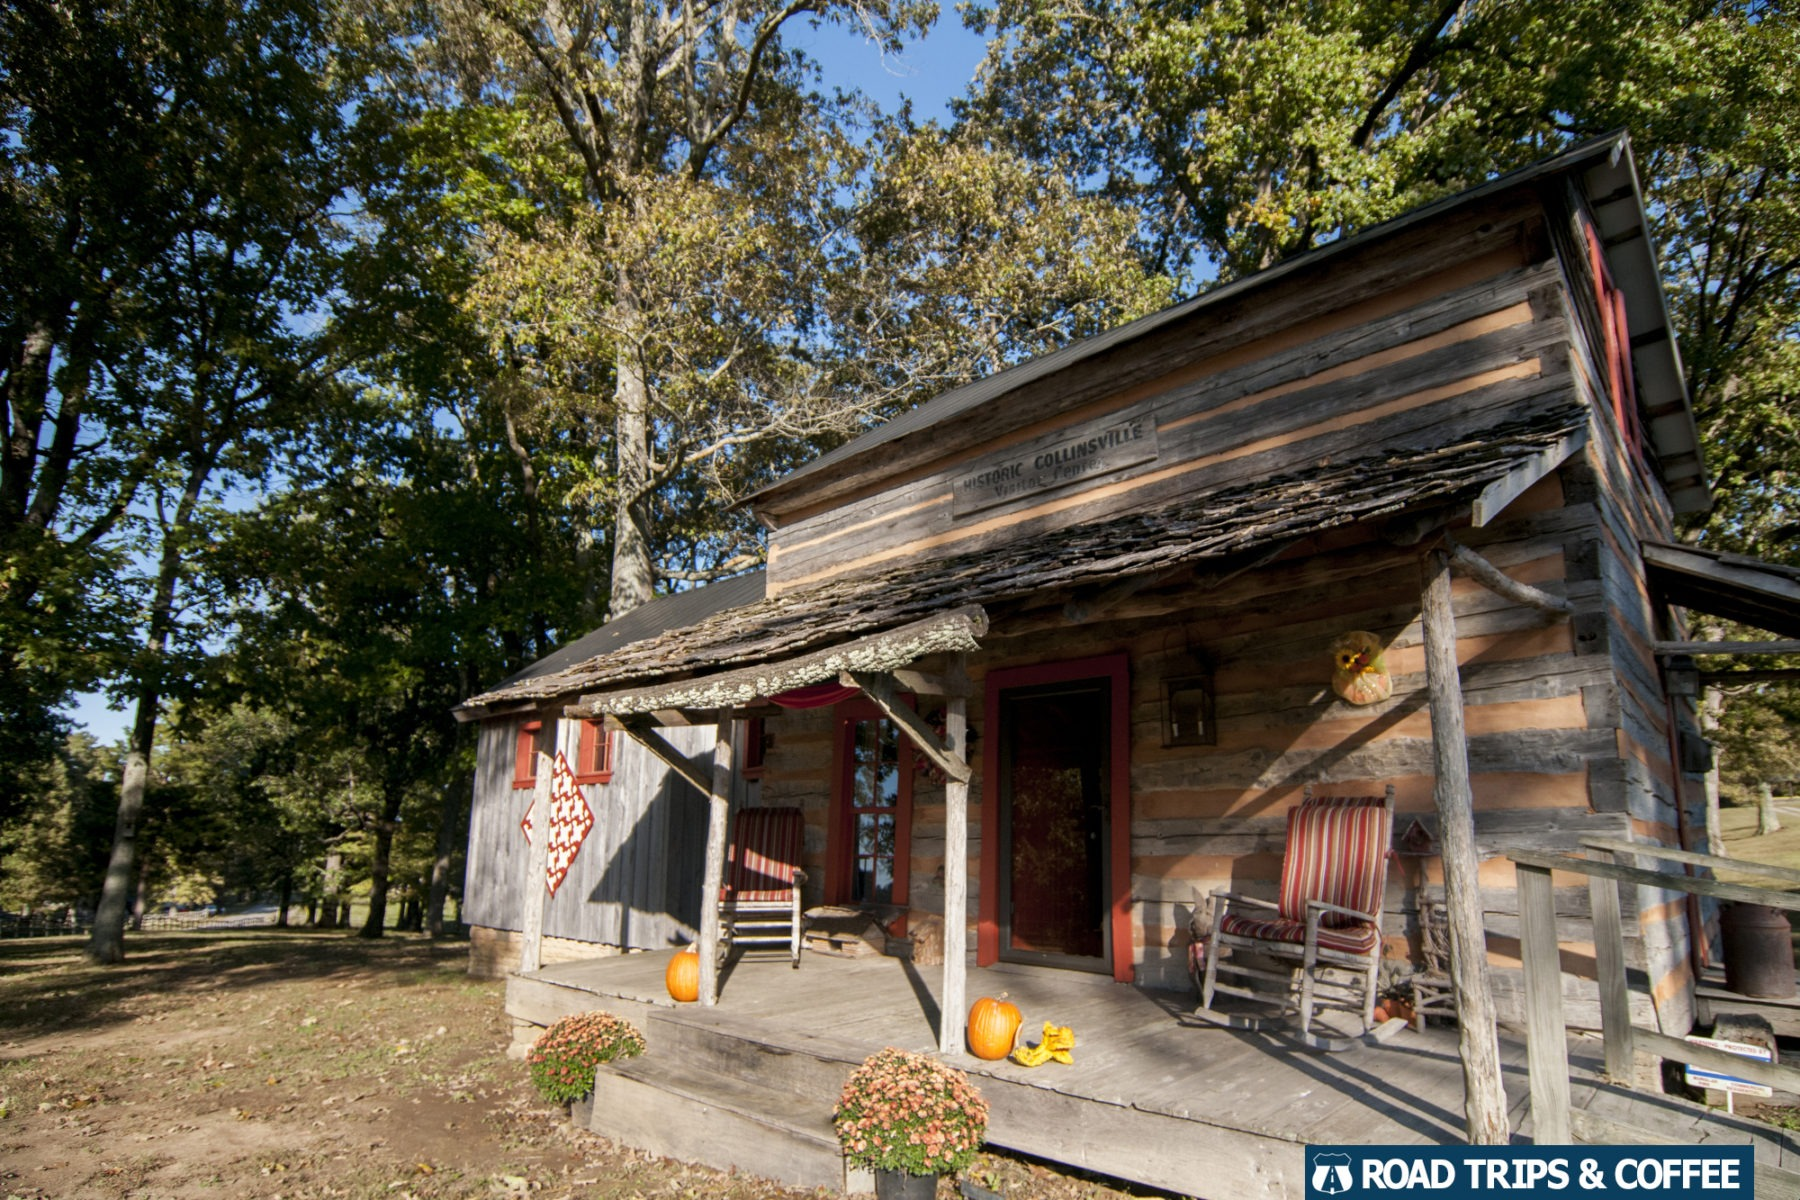 Rustic log home at Historic Collinsville in Clarksville, Tennessee